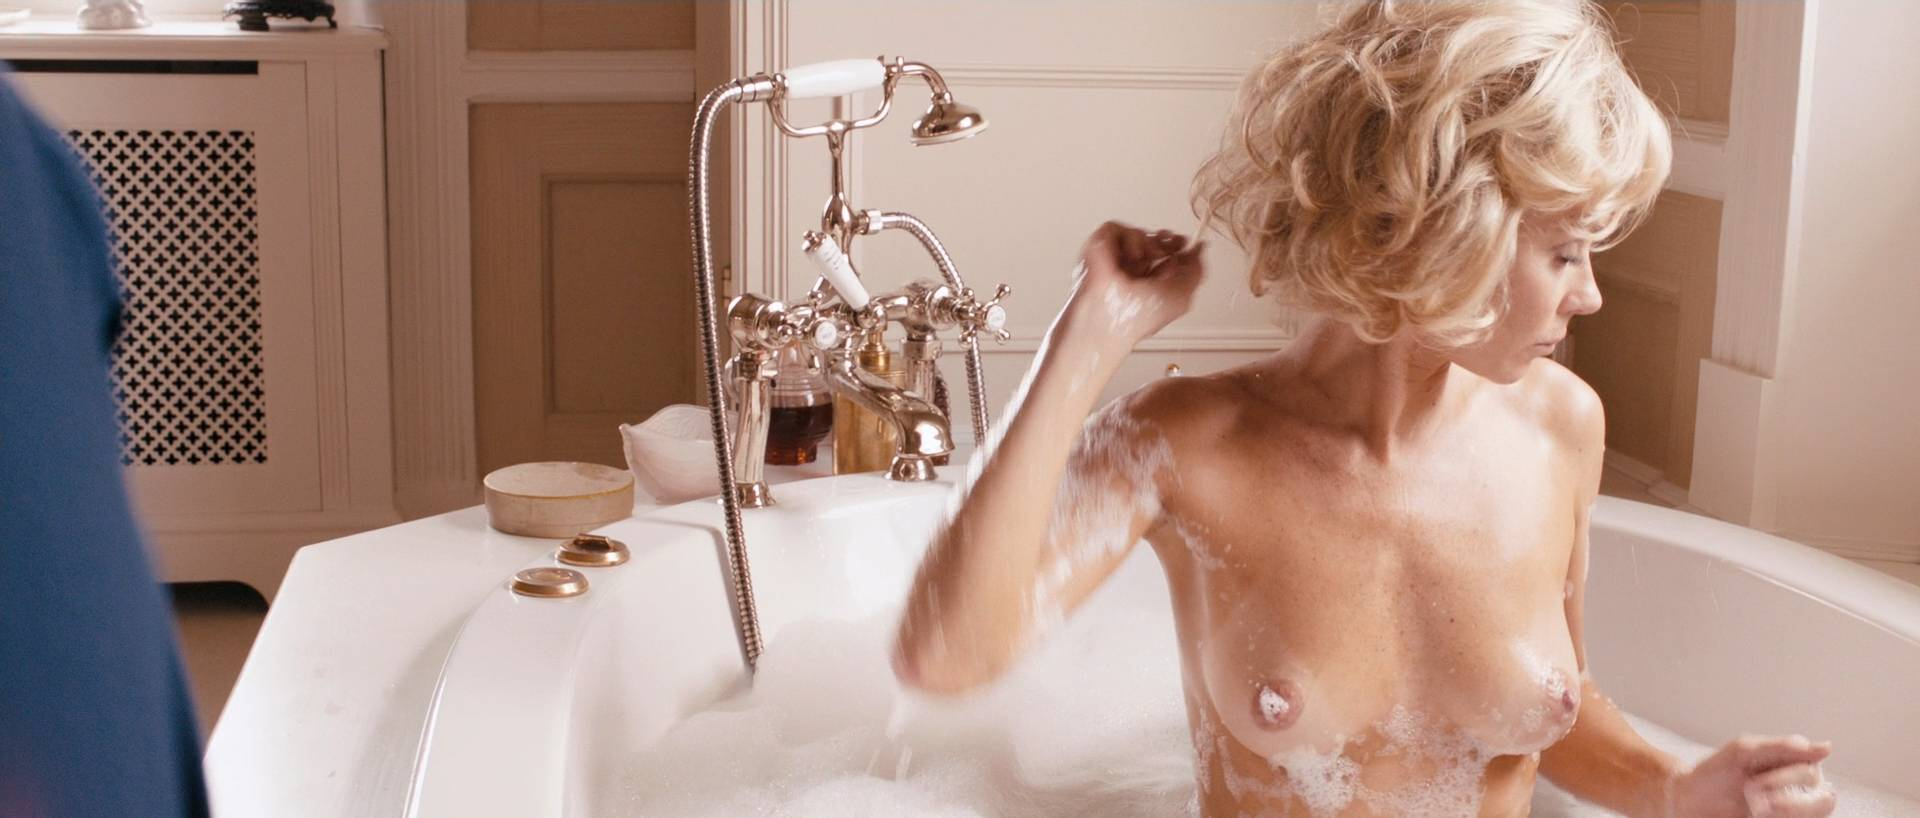 Anna Friel nude topless Tamsin Egerton nude various actress nude full frontal - The Look of Love (2013) HD 1080p (3)